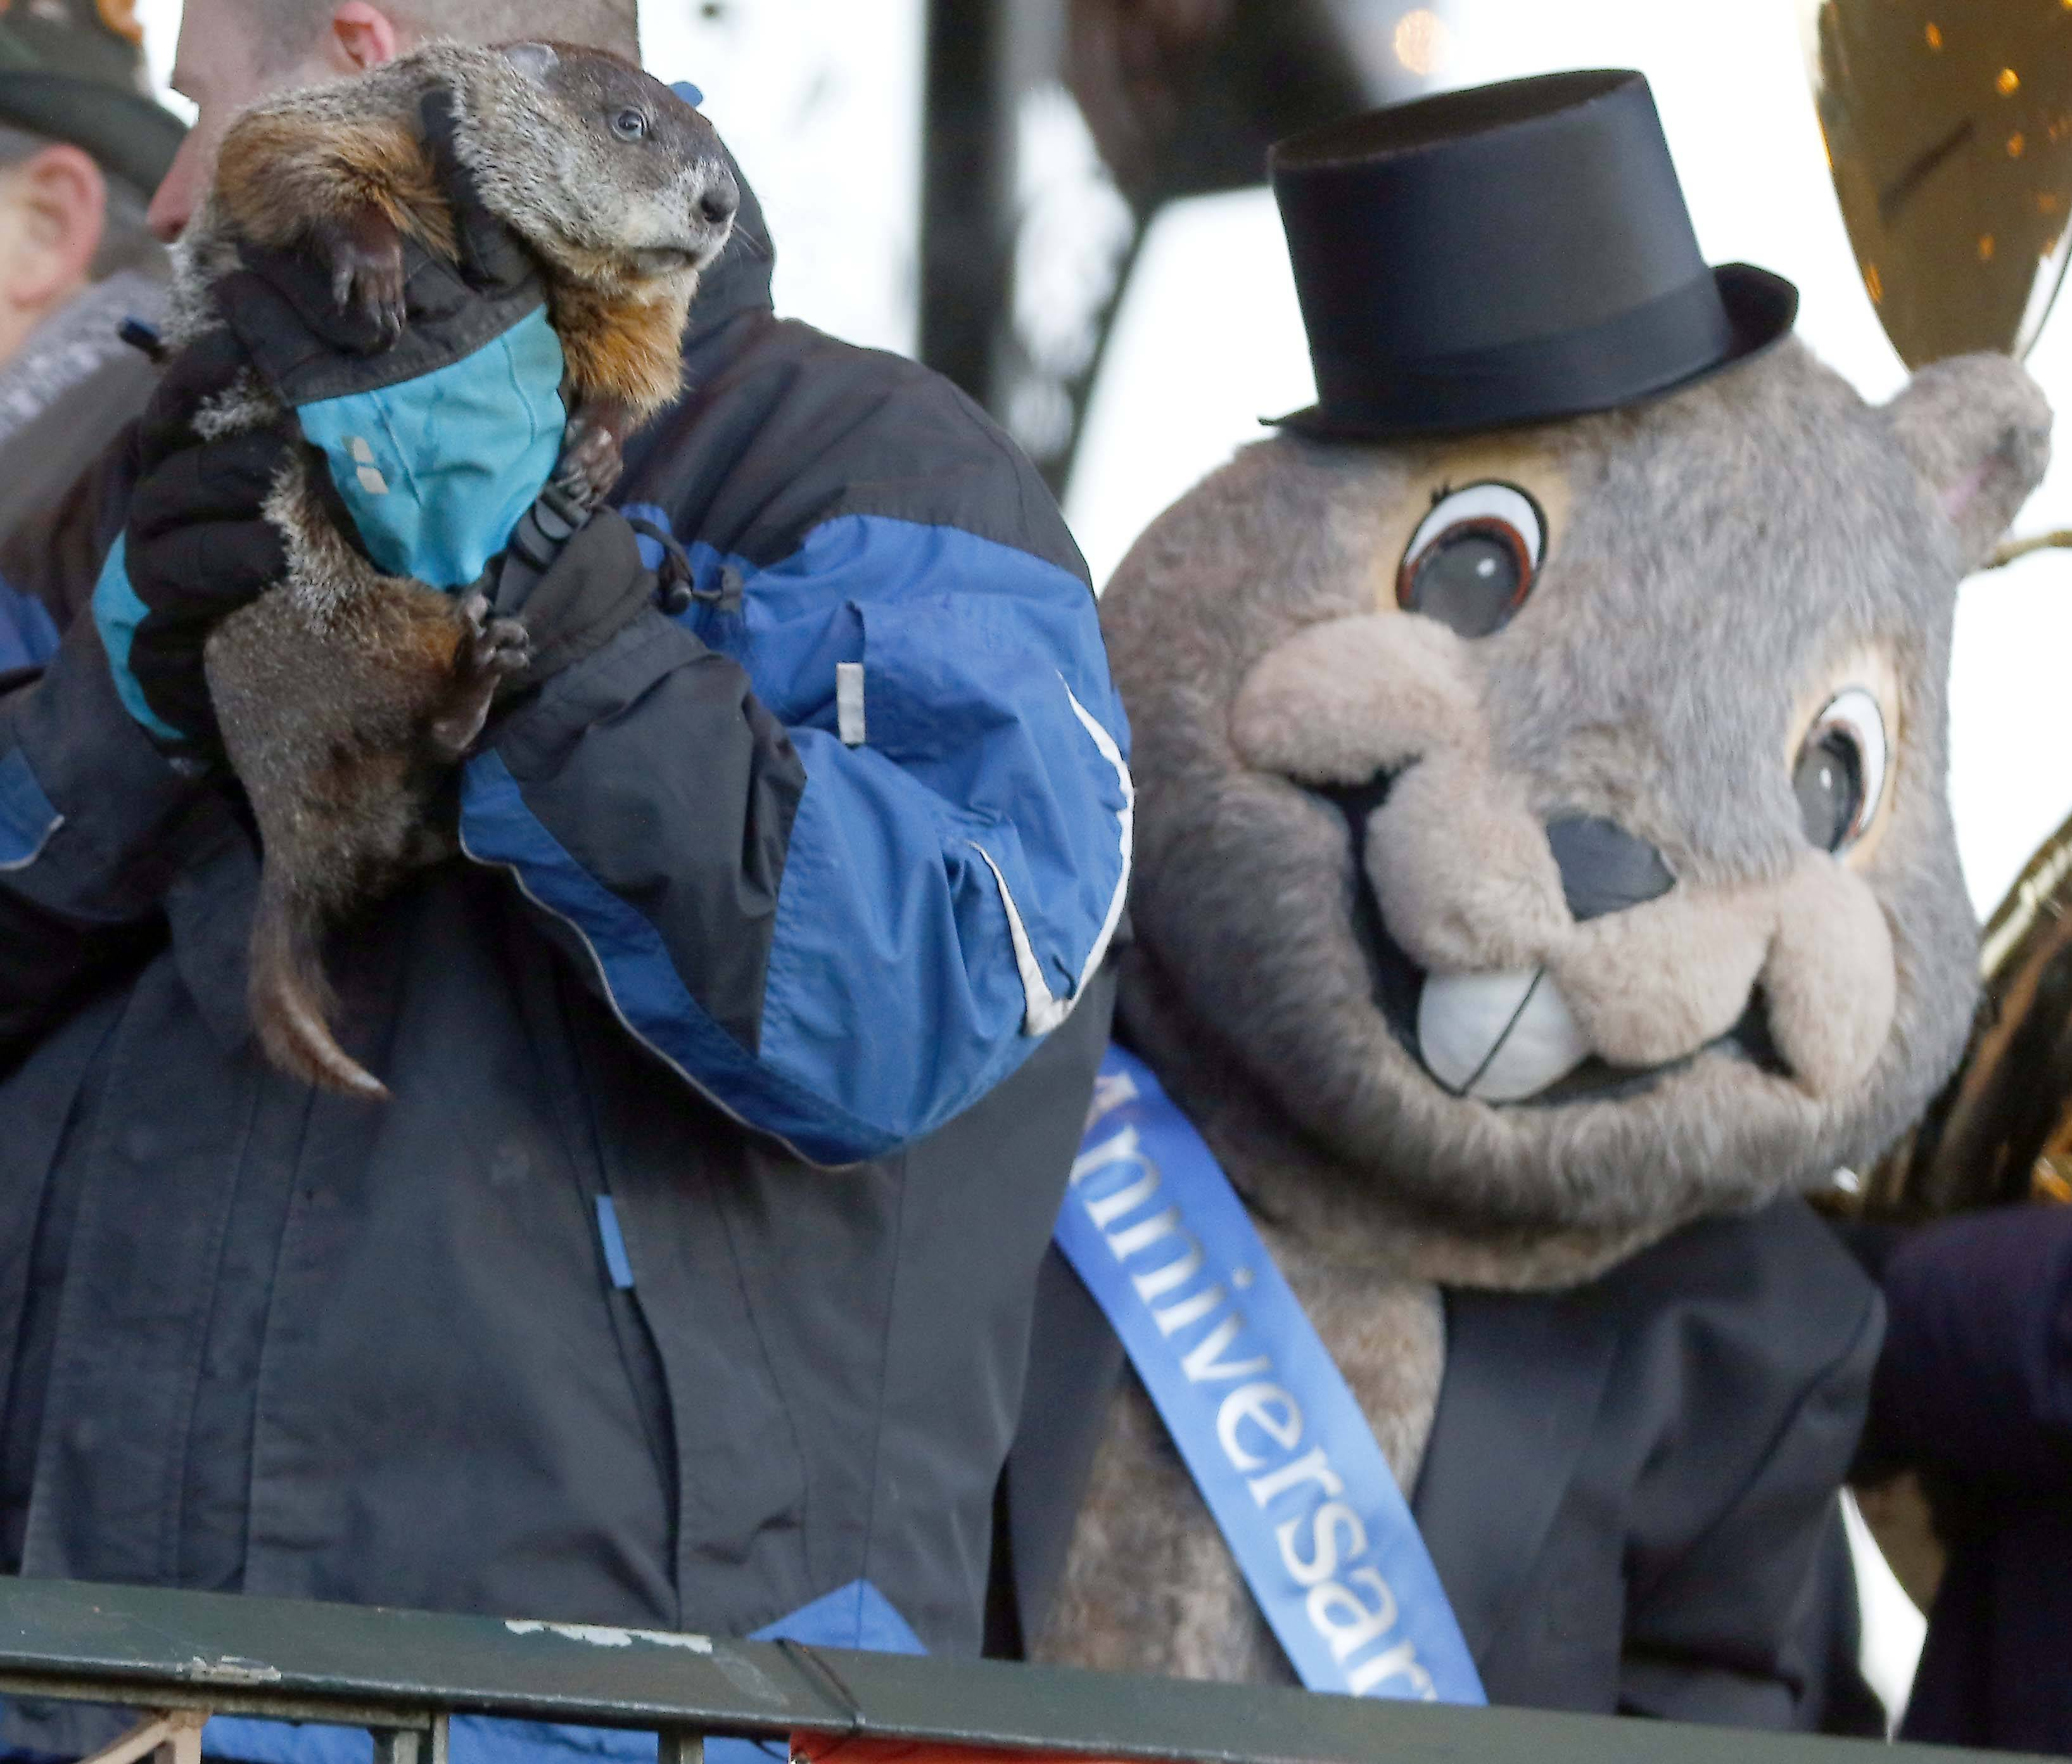 A giant groundhog mascot peeks around to see Woodstock Willie, who saw his shadow after emerging from his slumber Friday during the annual Groundhog Day event in Woodstock.